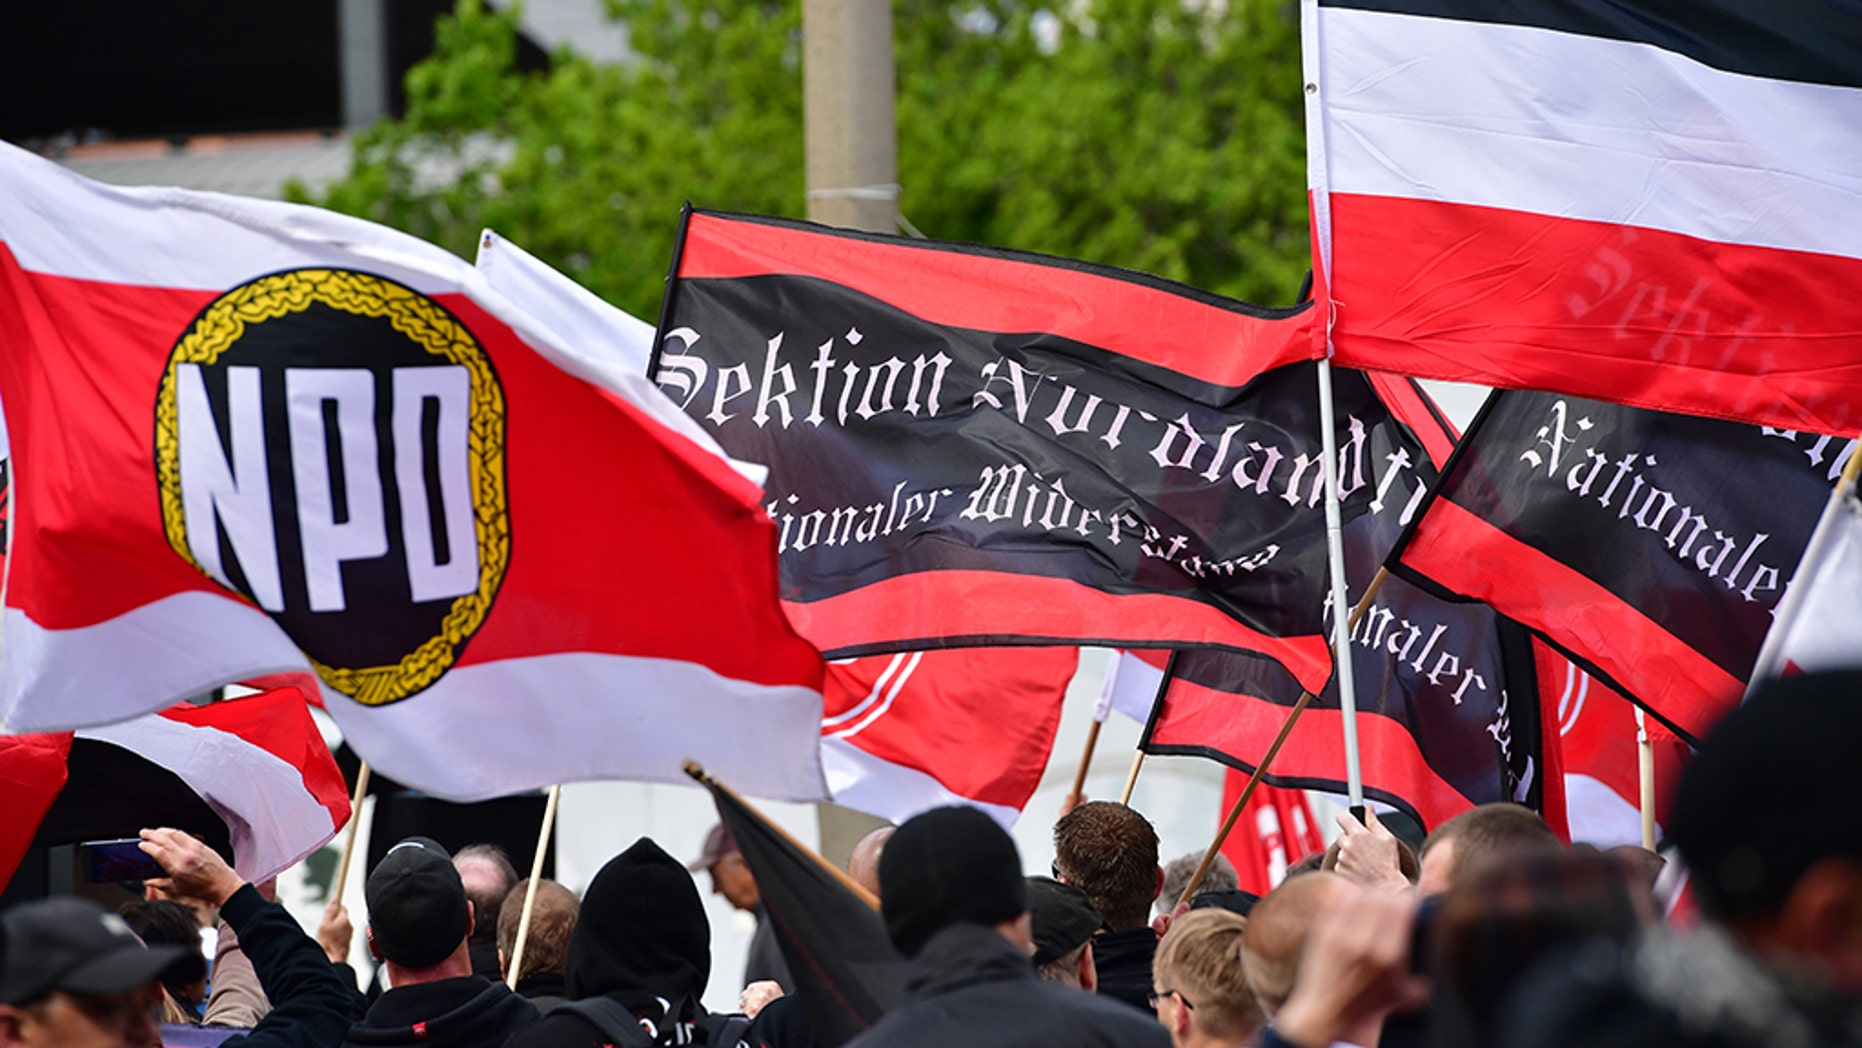 "The flags of ""Sektion Nordland"" and flags of the far-right NPD political party are seen while gathering to march on May Day on May 1, 2018 in Erfurt, Germany."